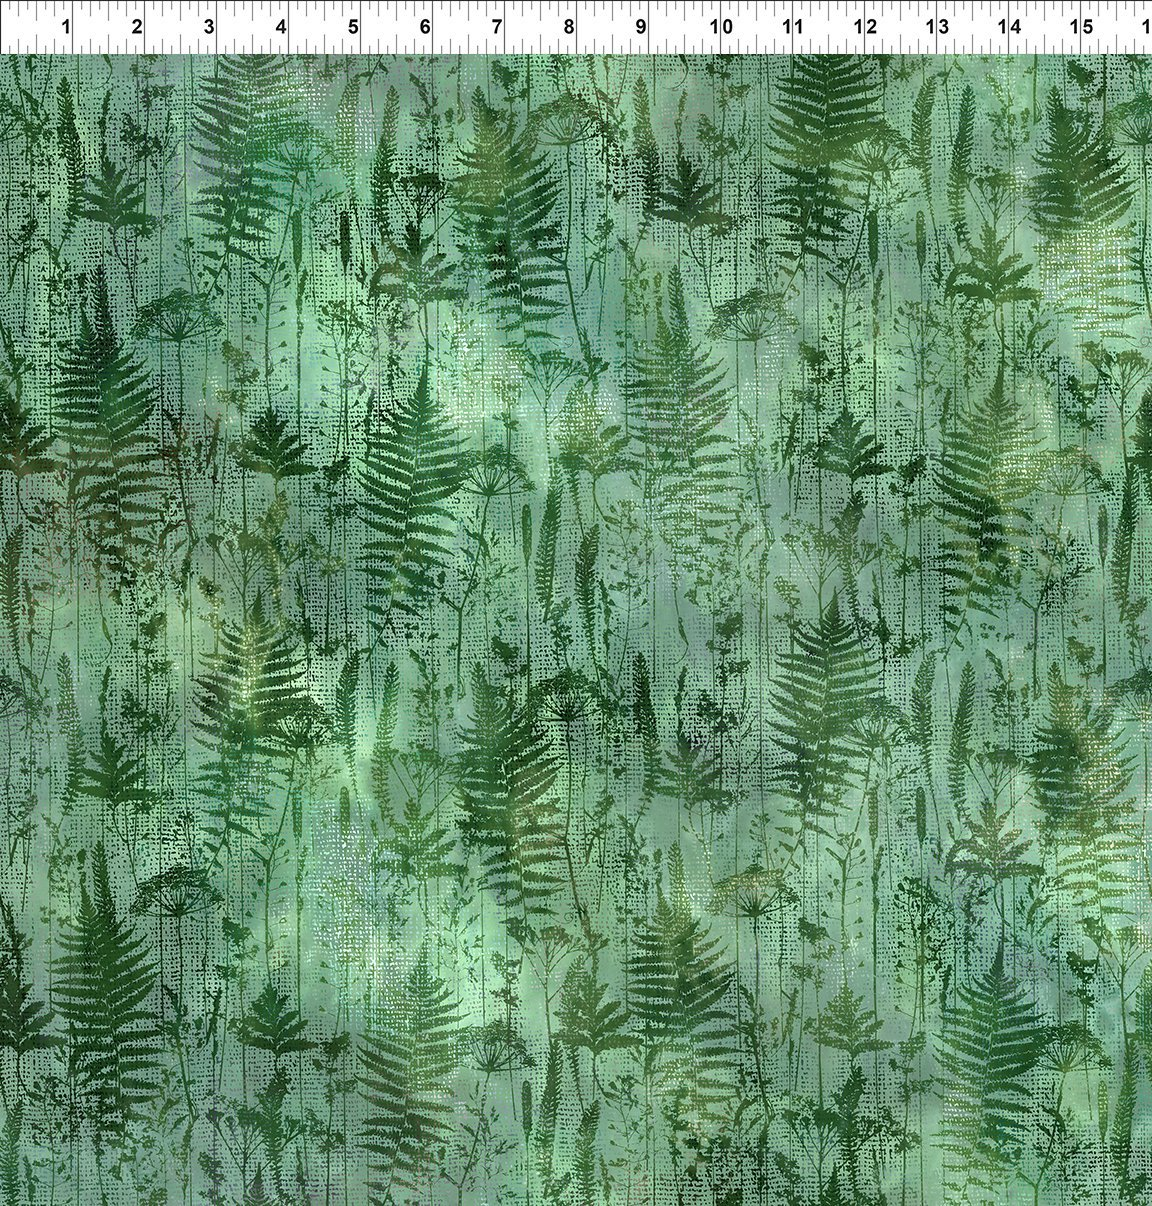 7HVN-1 Haven - Ferns - Green by Jason Yenter for In The Beginning Fabric